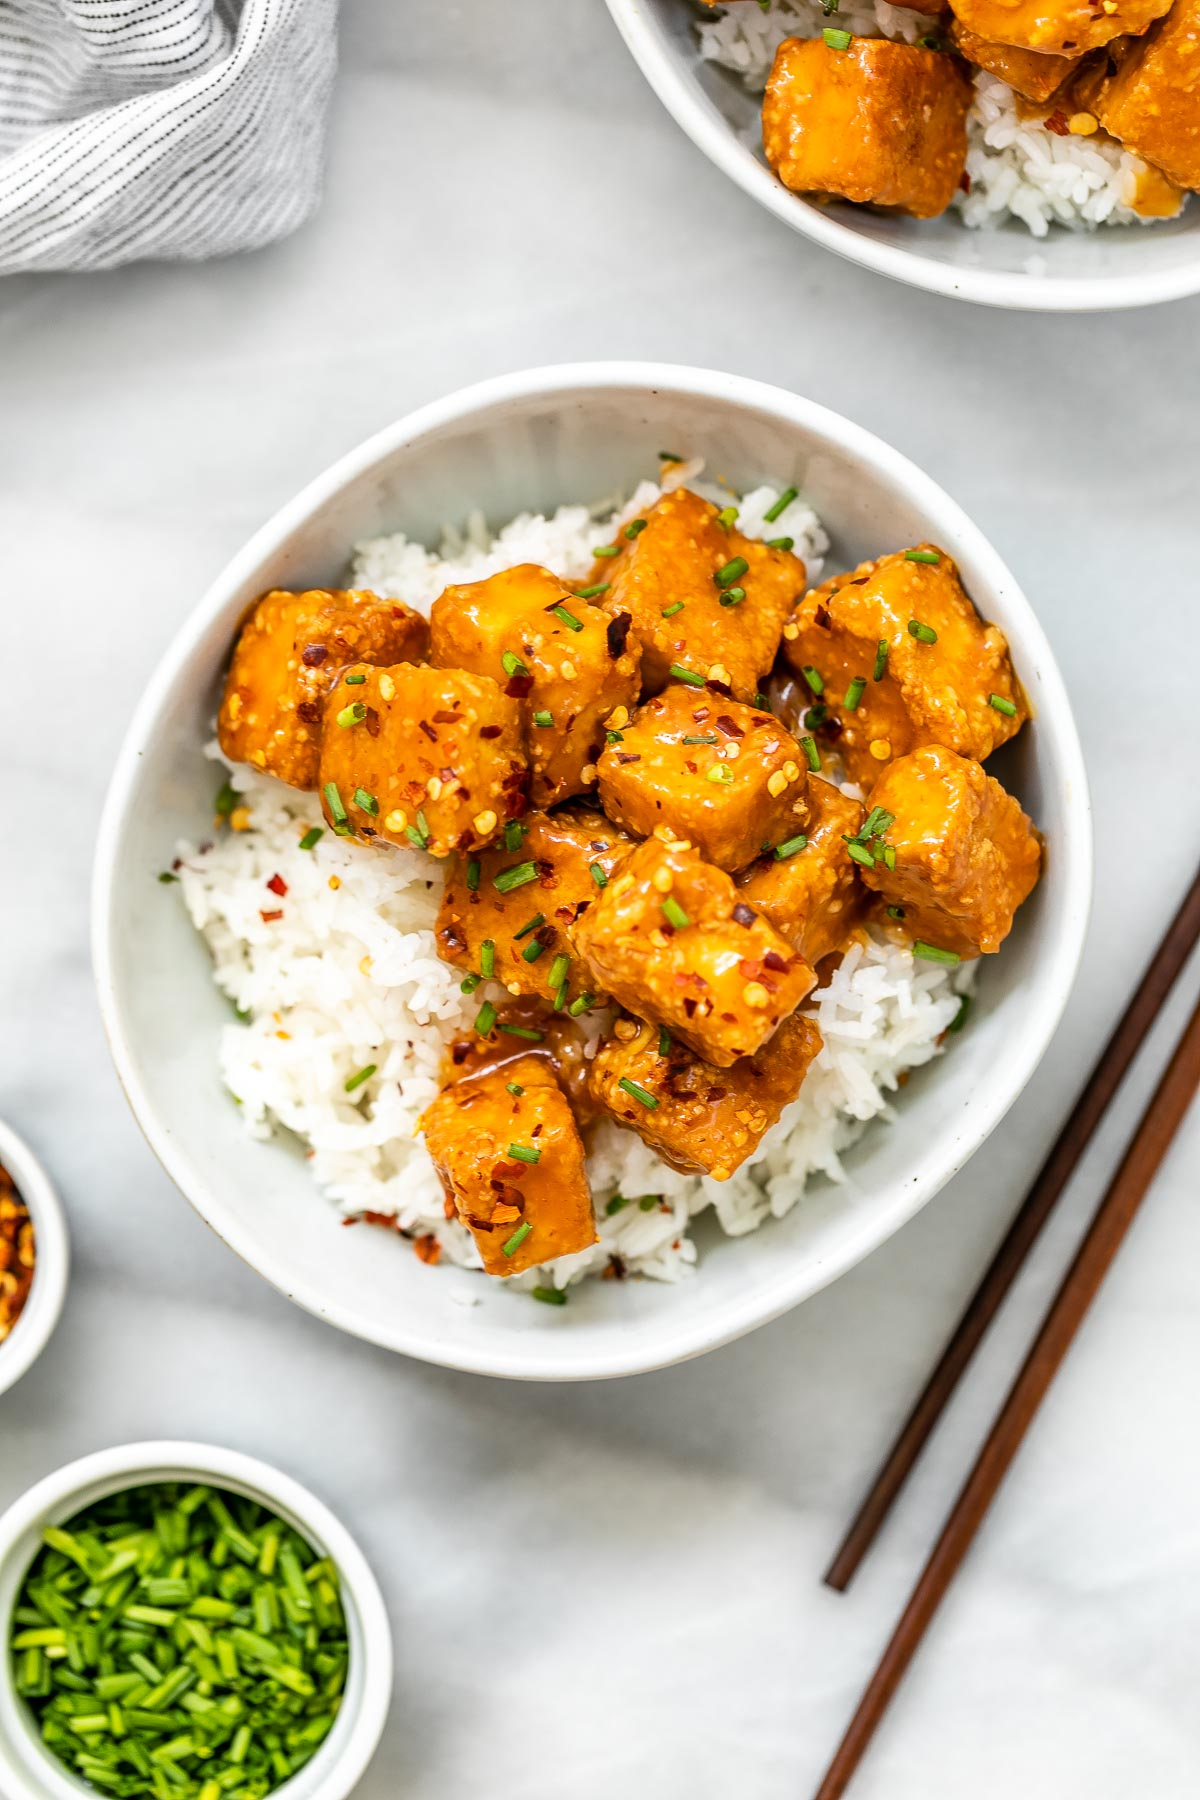 Baked orange tofu in a small bowl with chopsticks.